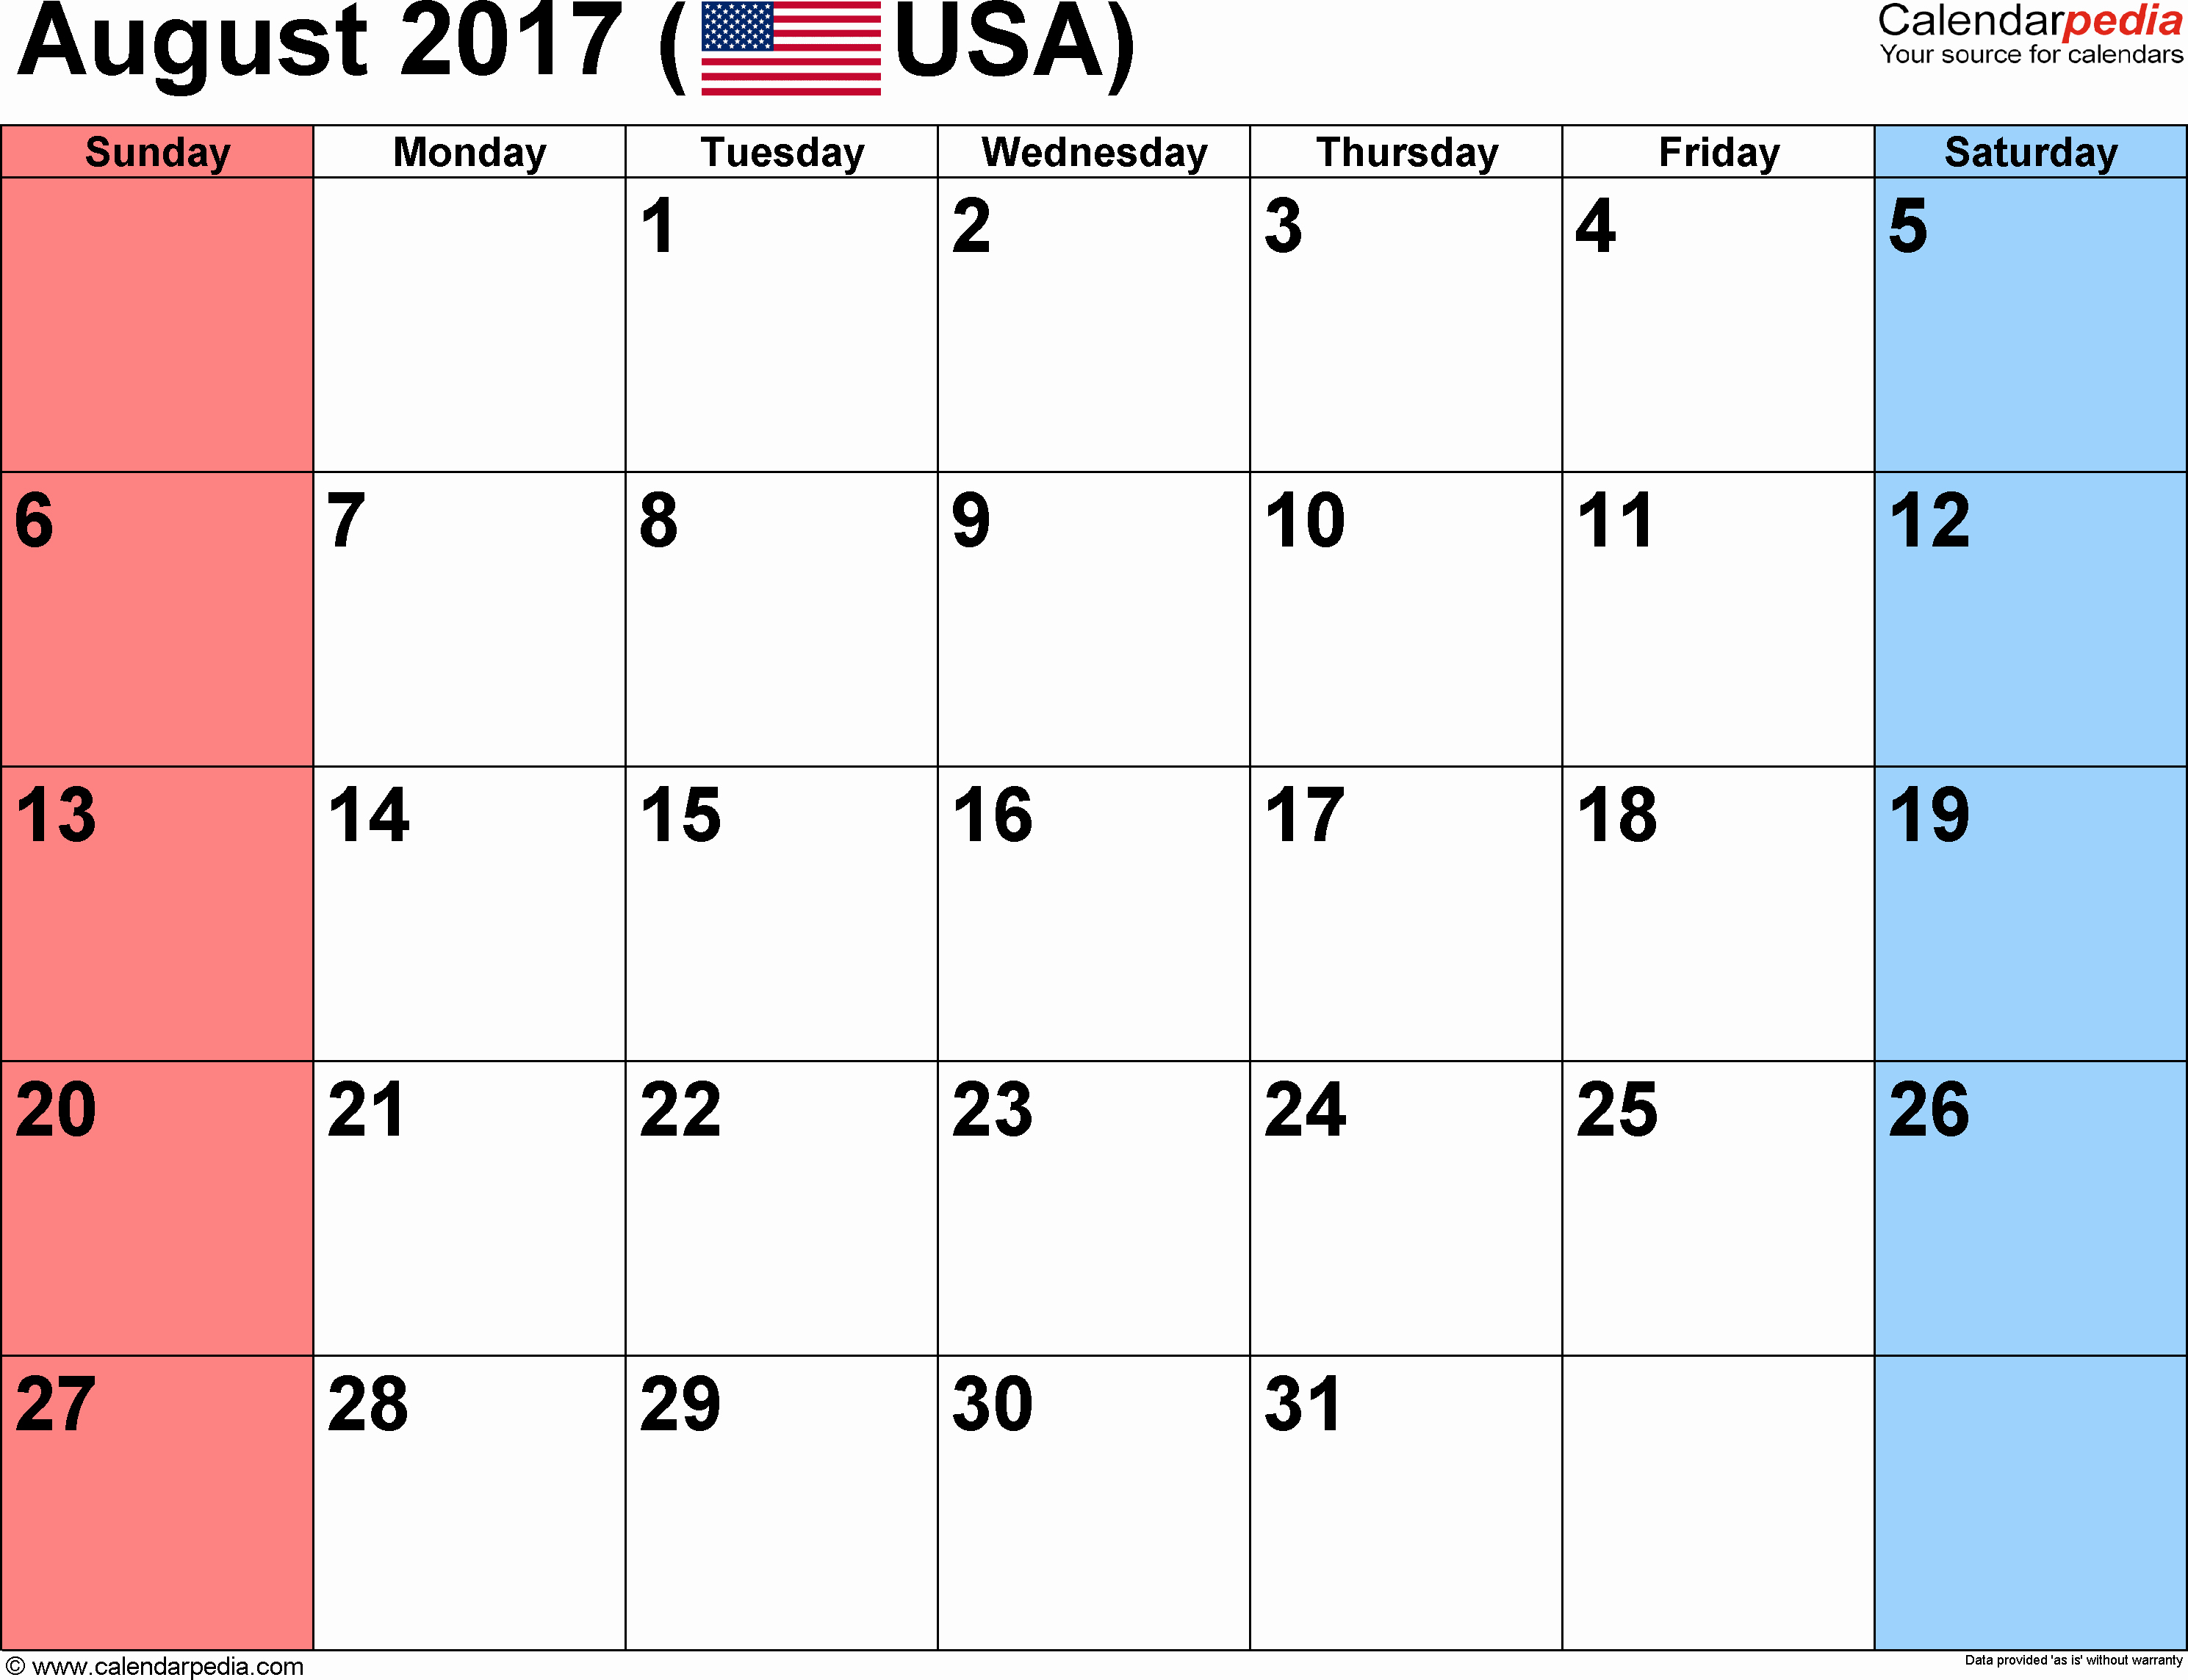 Blank Calendar Template August 2017 Best Of August 2017 Calendars for Word Excel & Pdf